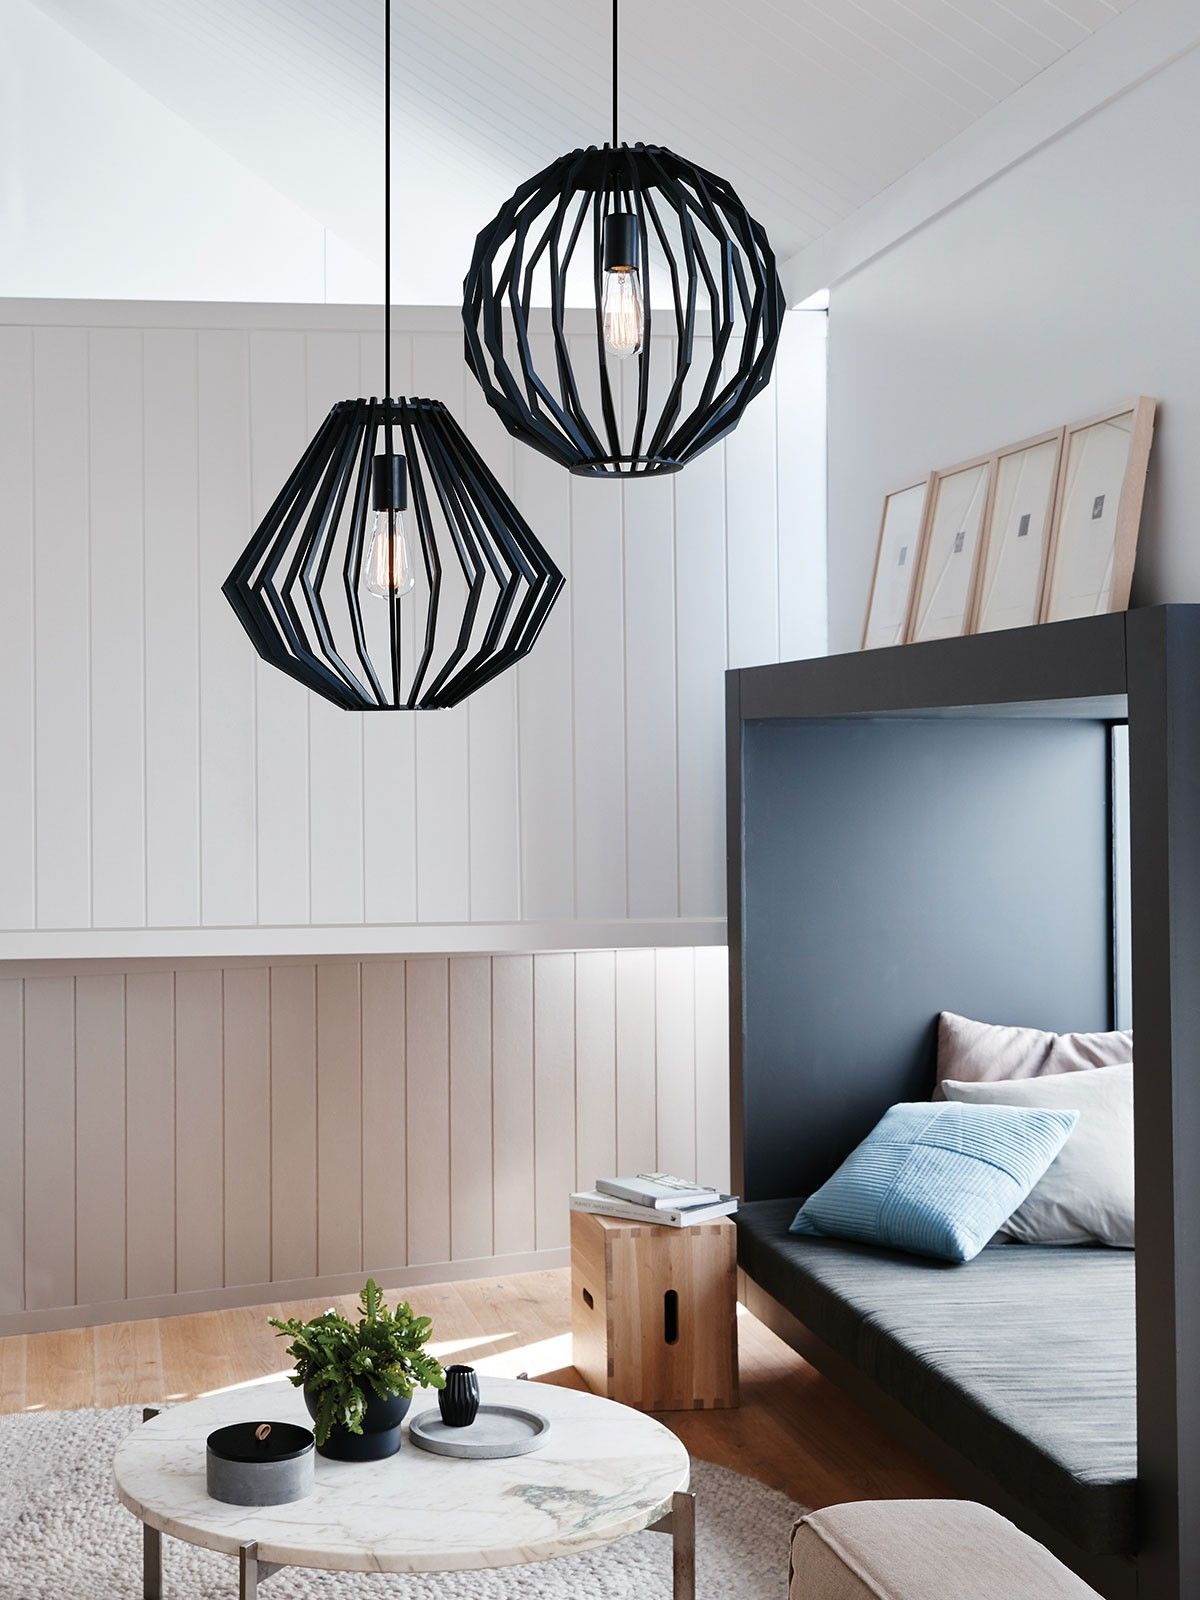 Walderik large squat pendant in black modern pendants pendant walderik large squat pendant in black modern pendants pendant lights lighting aloadofball